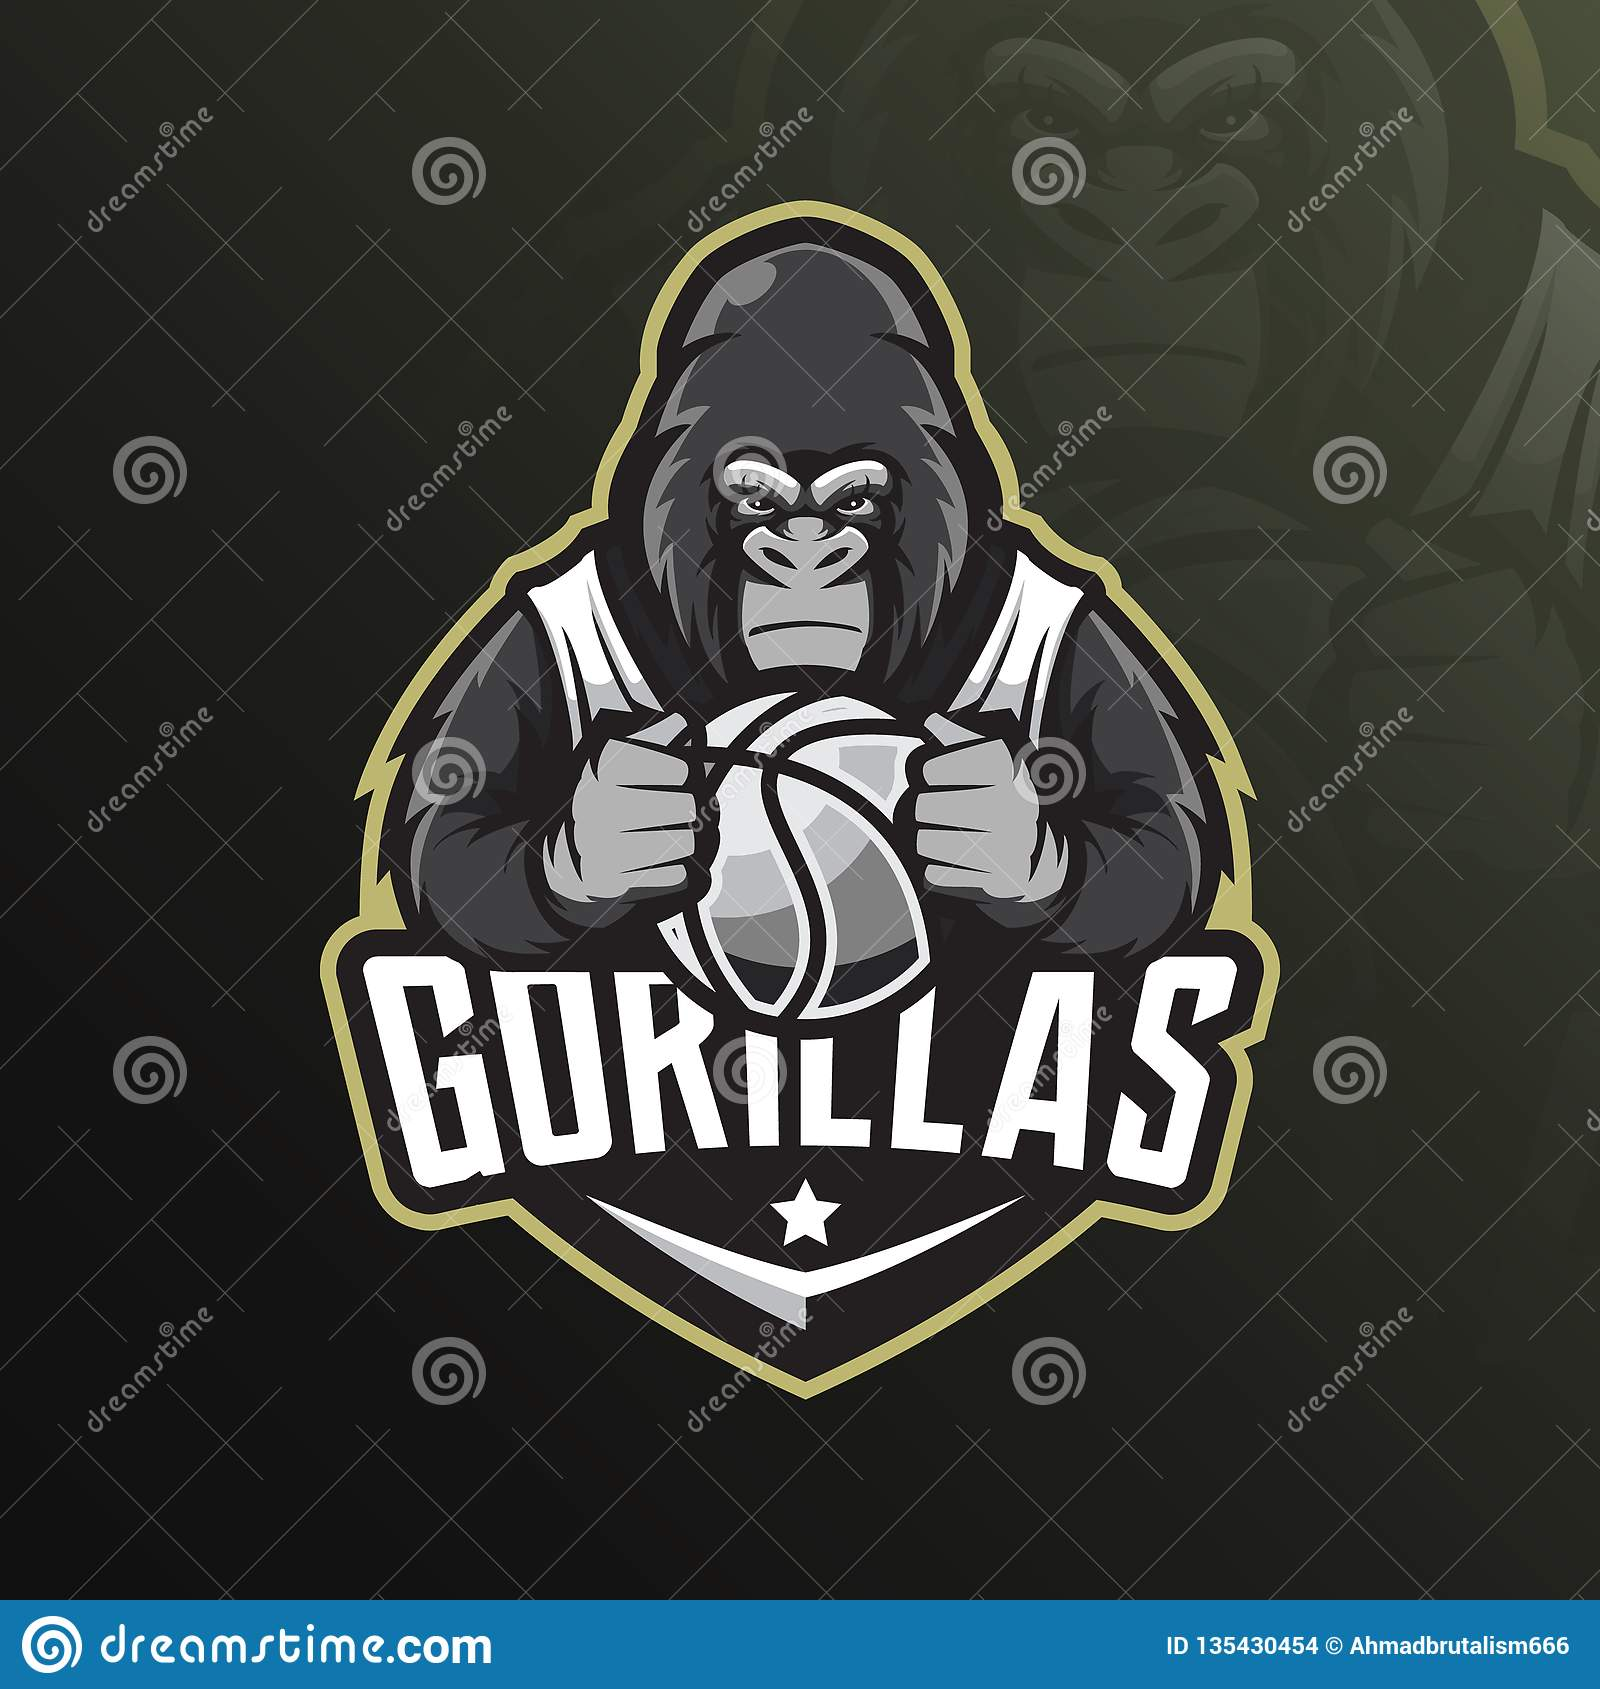 Gorilla mascot logo design vector with modern illustration concept style for badge, emblem and tshirt printing. angry gorilla